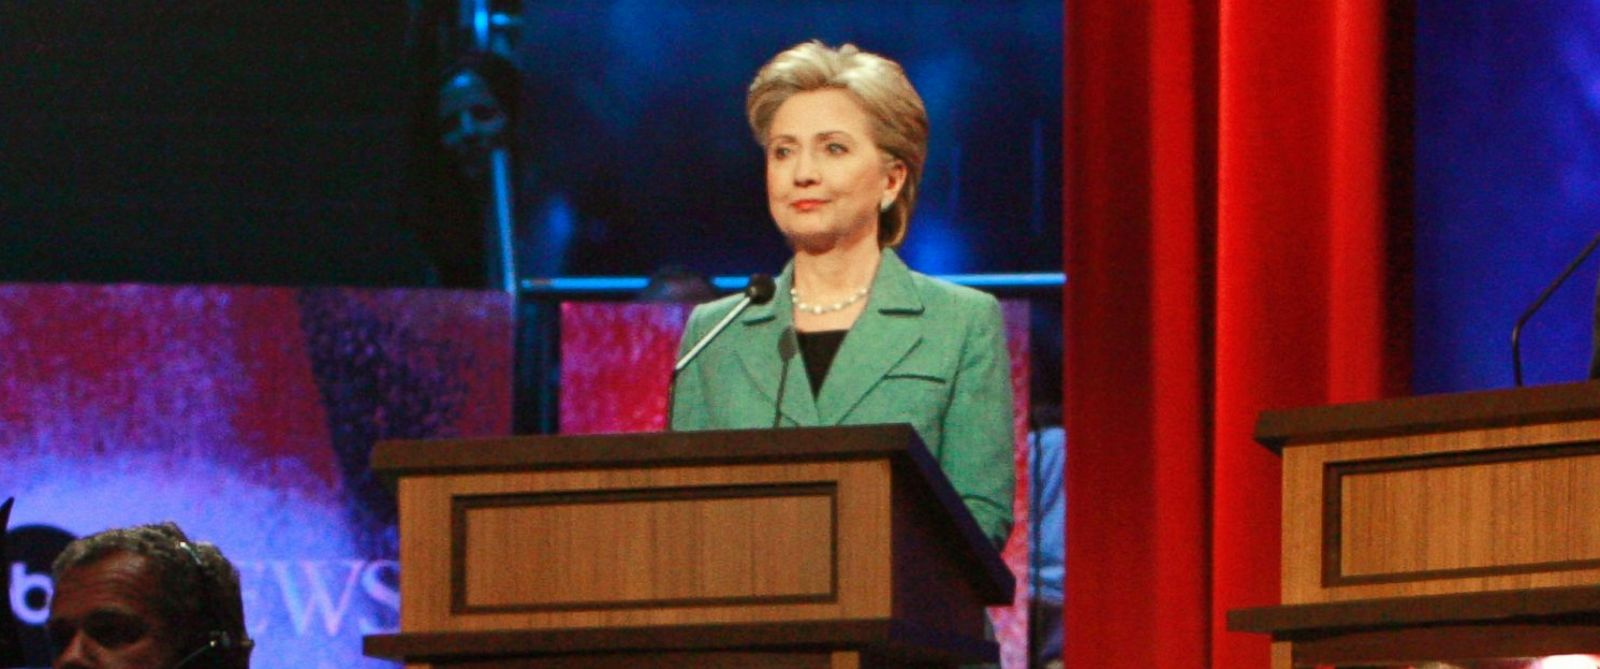 PHOTO: Hillary Clinton is pictured before the start of the Democratic Party debate at the National Constitution Center in Philadelphia on April 16, 2008.